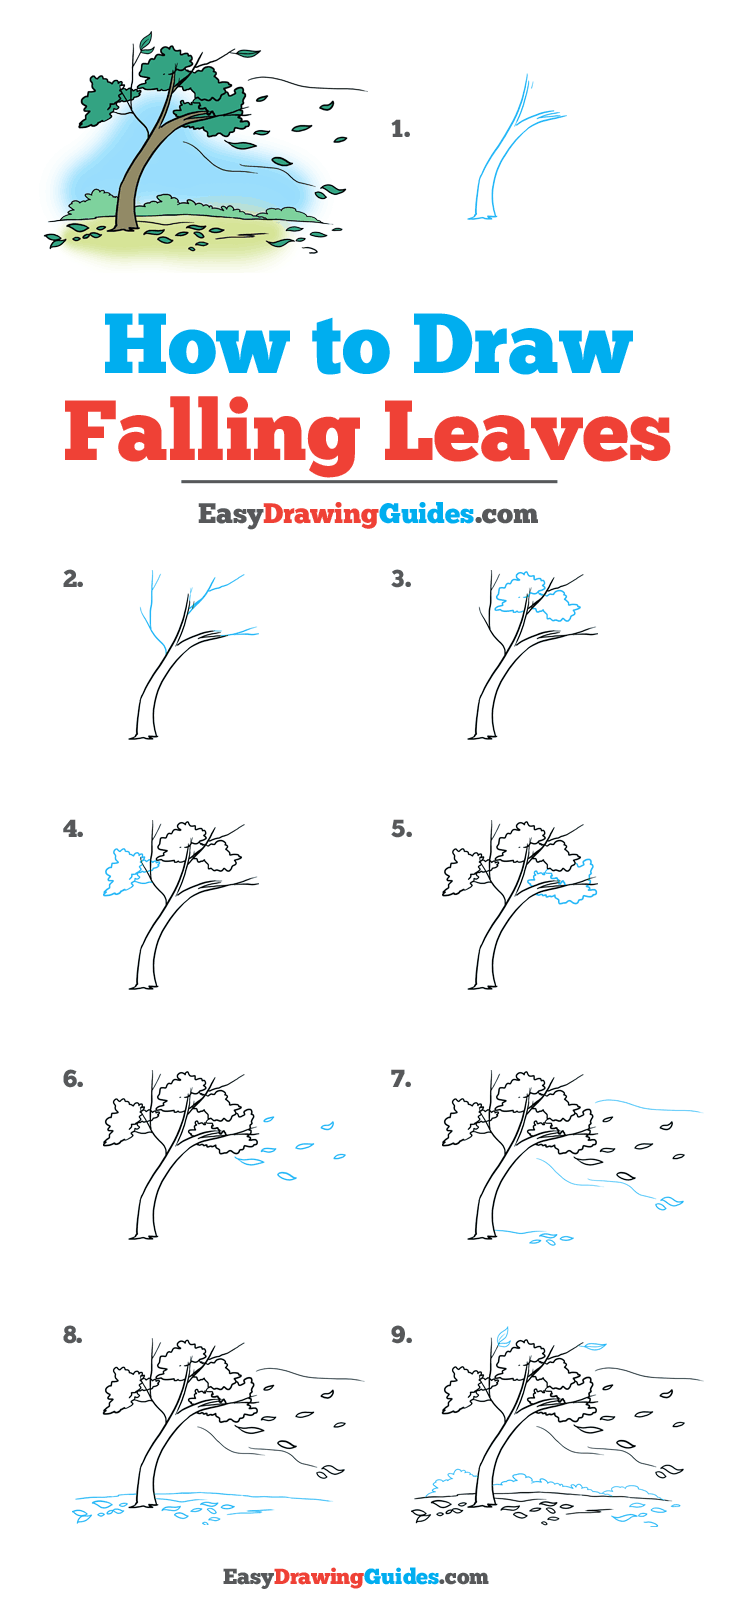 How to Draw Falling Leaves